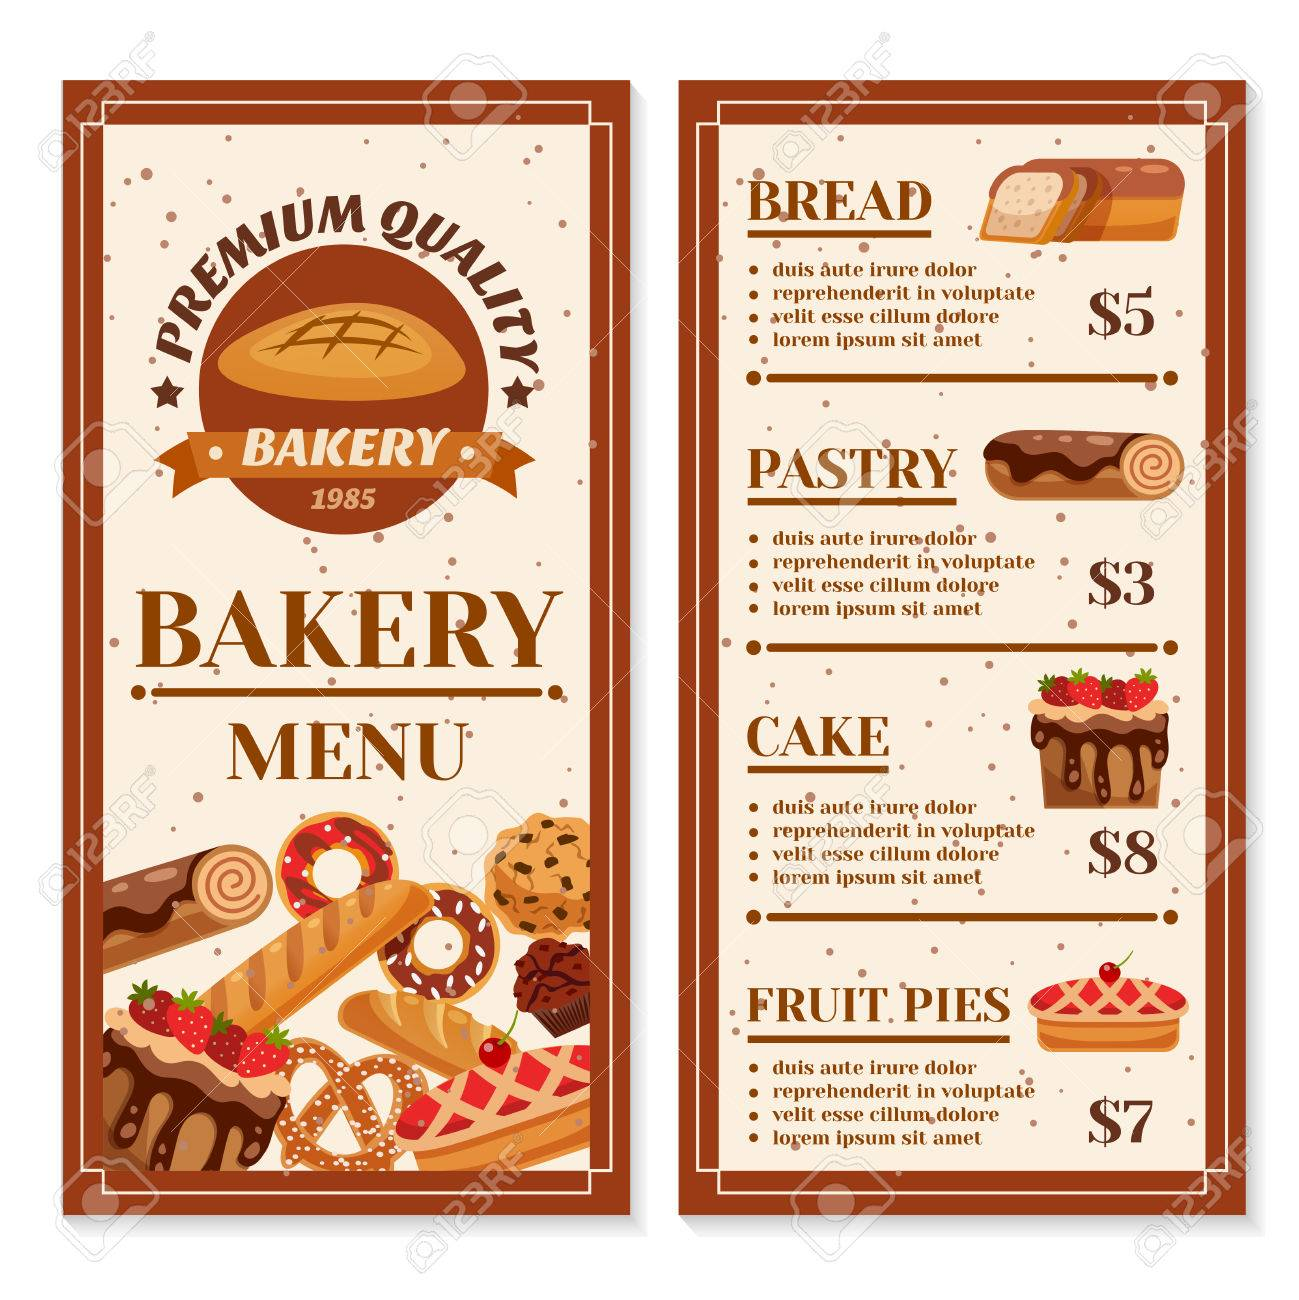 Bakery menu design with year of foundation at cover and product bakery menu design with year of foundation at cover and product price list isolated vector illustration altavistaventures Image collections